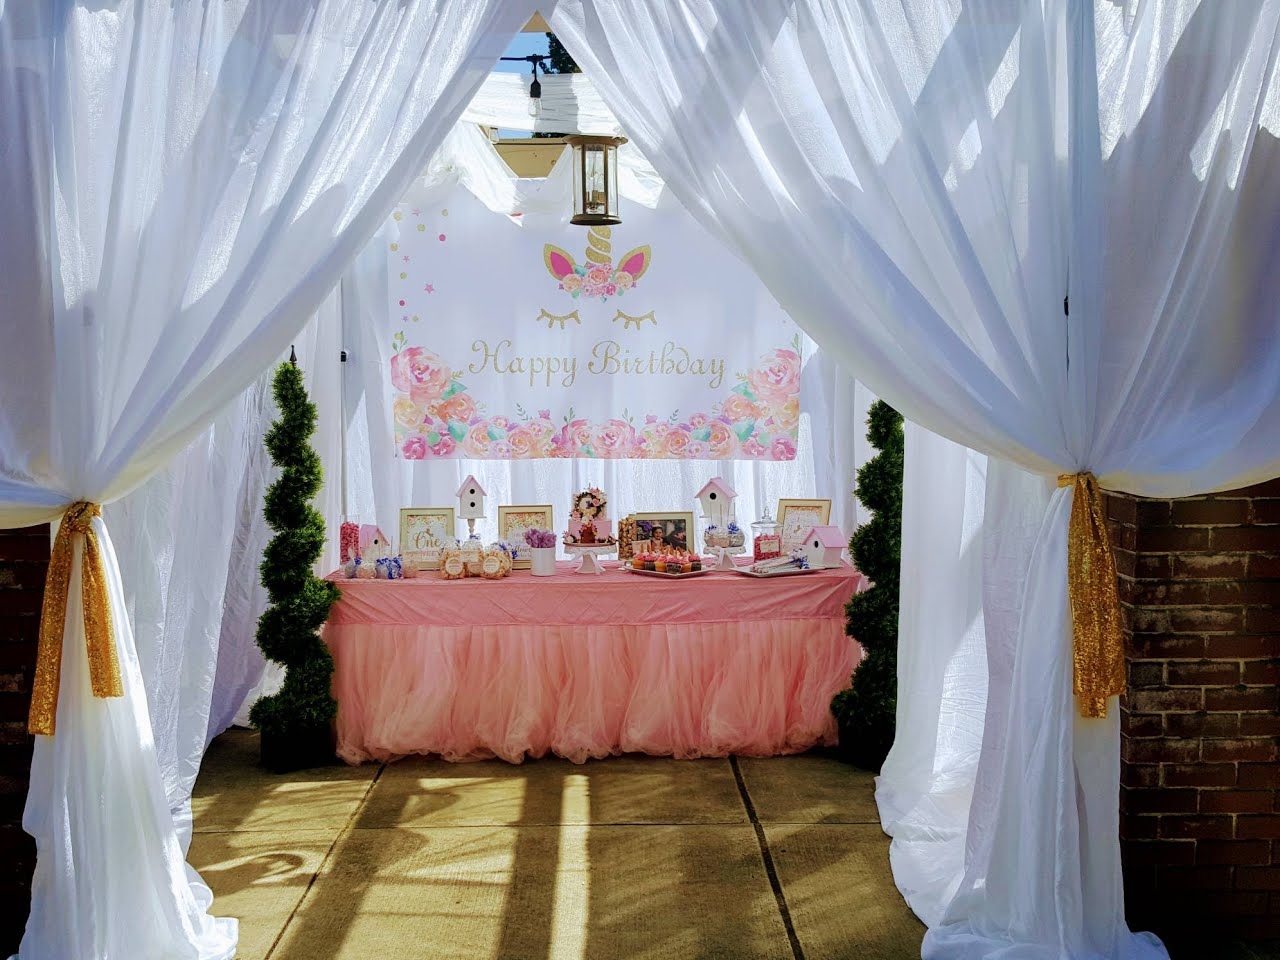 Whimsical Birthday party